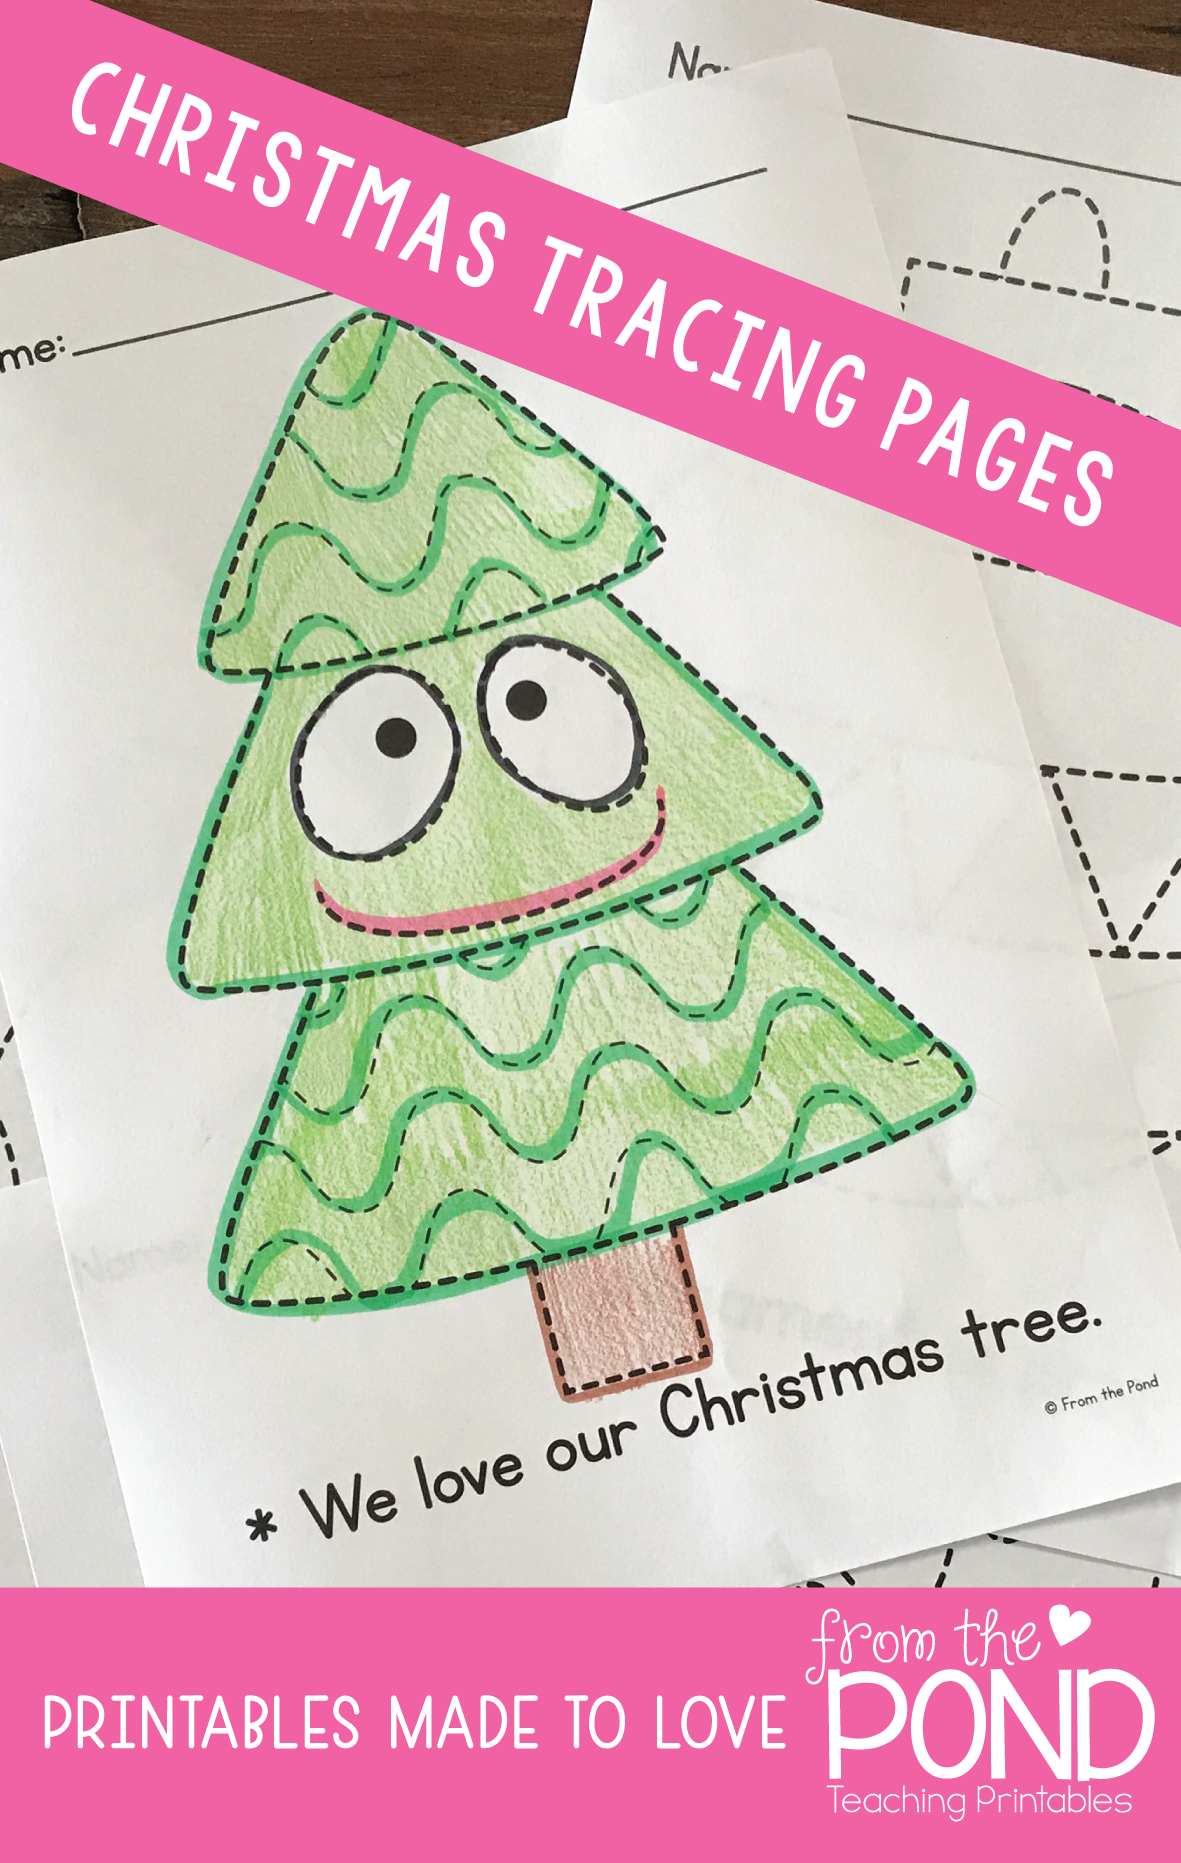 Christmas Tracing Pages {Fine Motor + Prewriting} | Worksheets ...